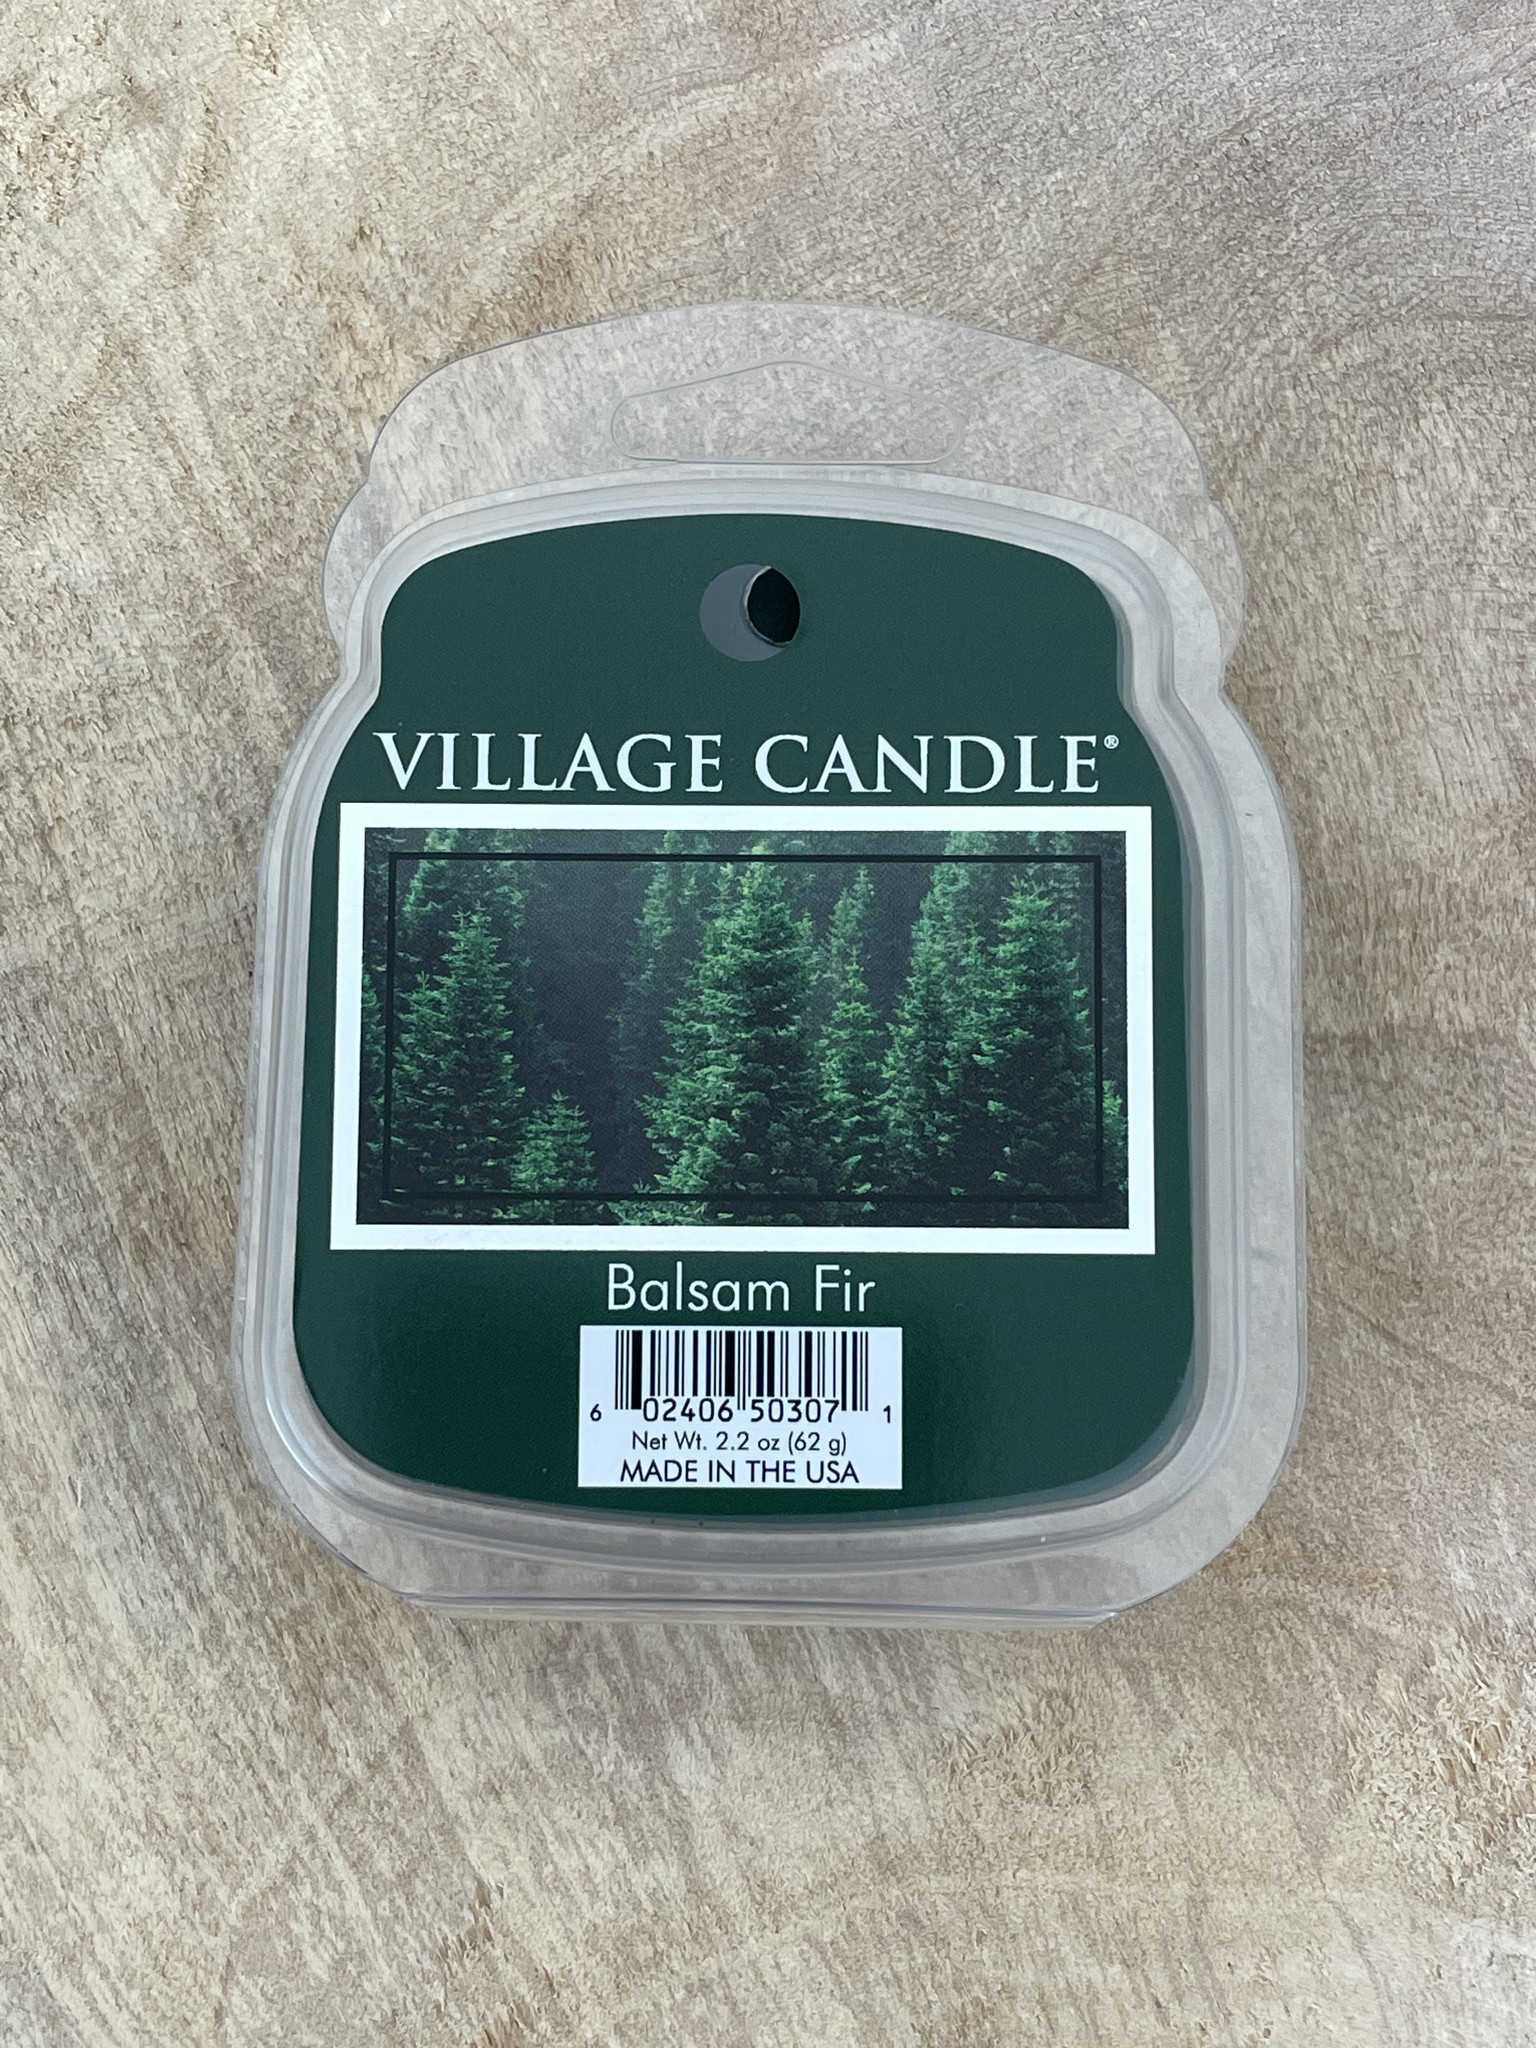 Village Candle Village Candle Balsam Fir Wax Melt